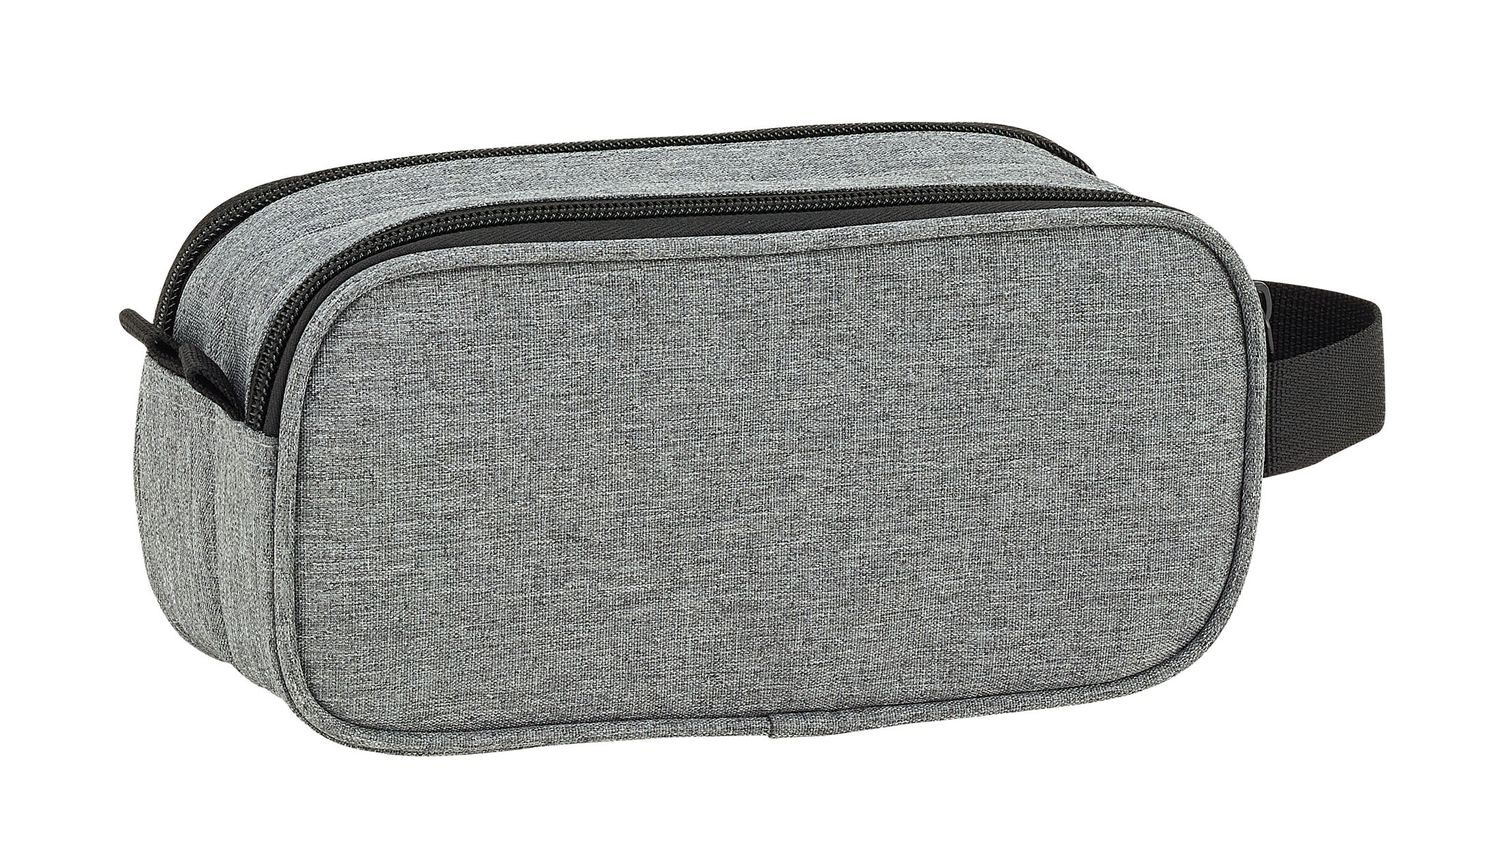 Blackfit Black & Grey Laptop Accessory Case – image 2